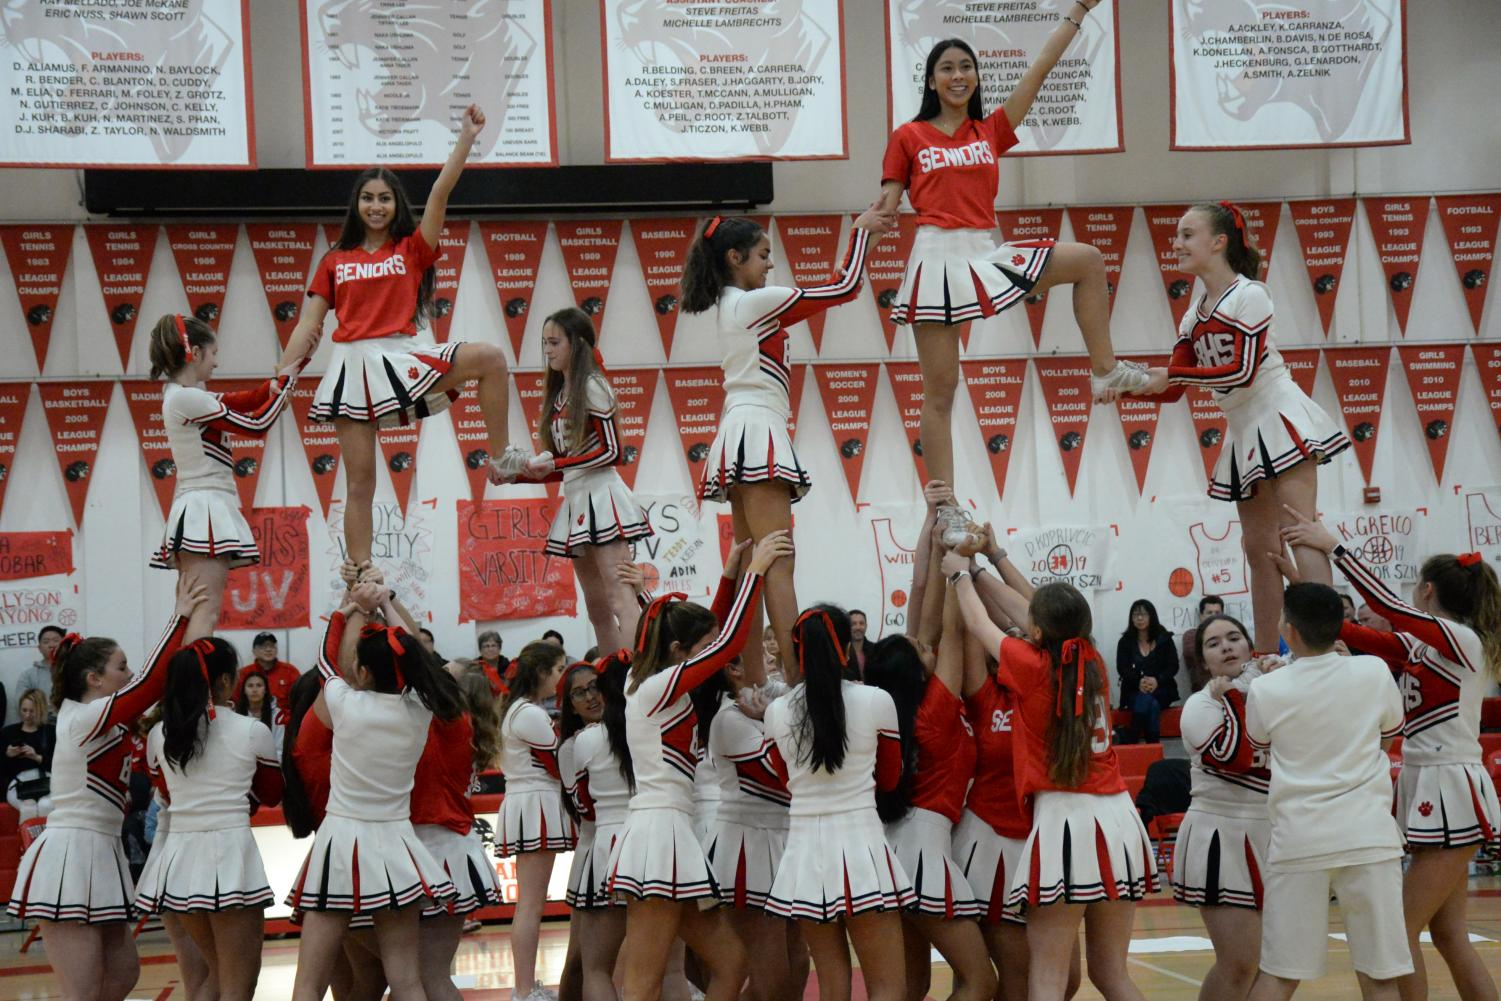 The Burlingame cheer squad performed on Feb. 1 for senior night, the last home game of the basketball season.